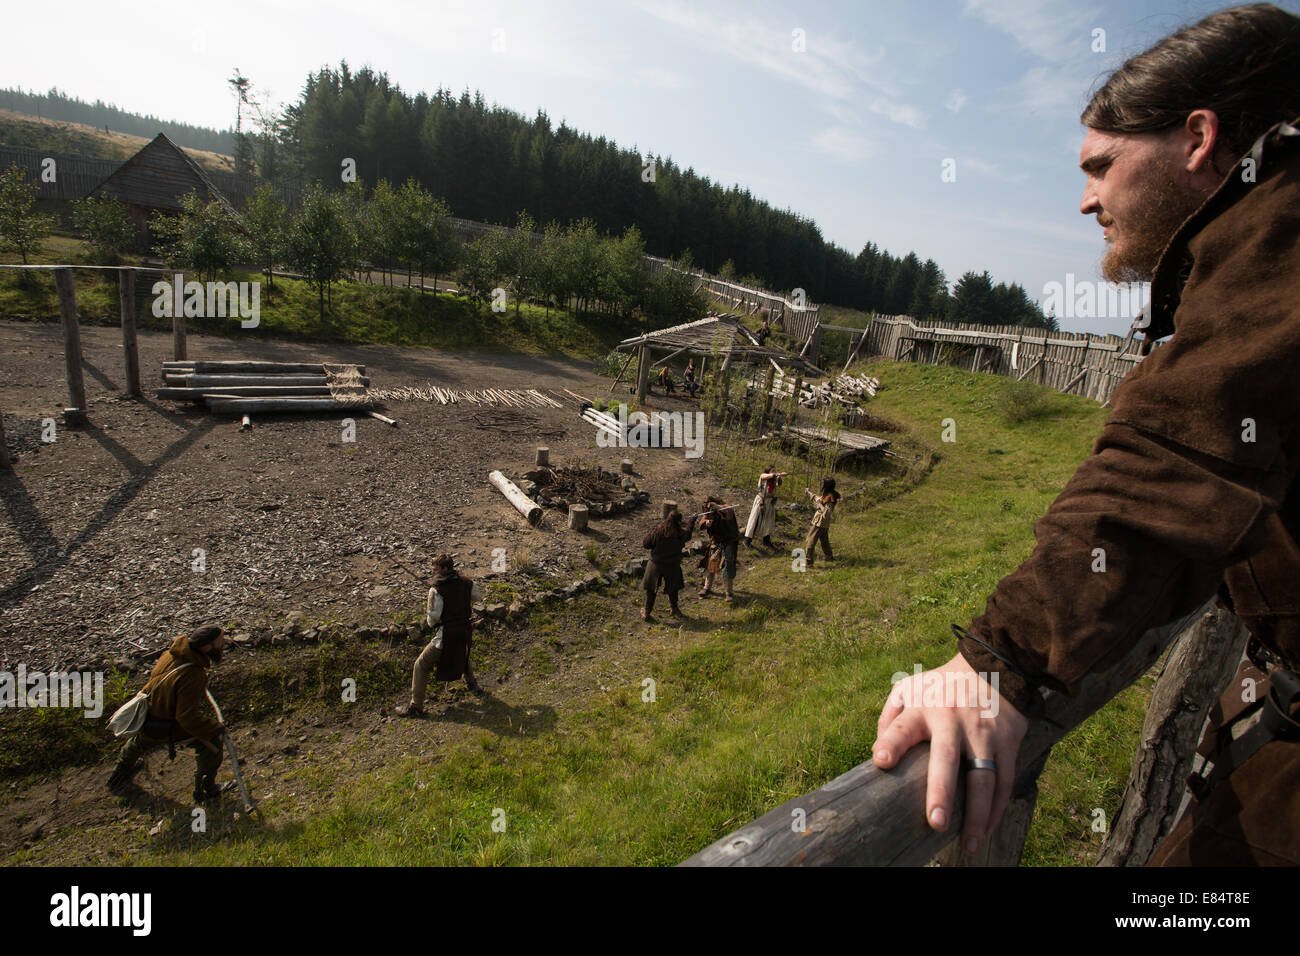 Clanranald Trust, at Duncarron medieval fortified village, in Carron Valley Forest, Scotland Stock Photo